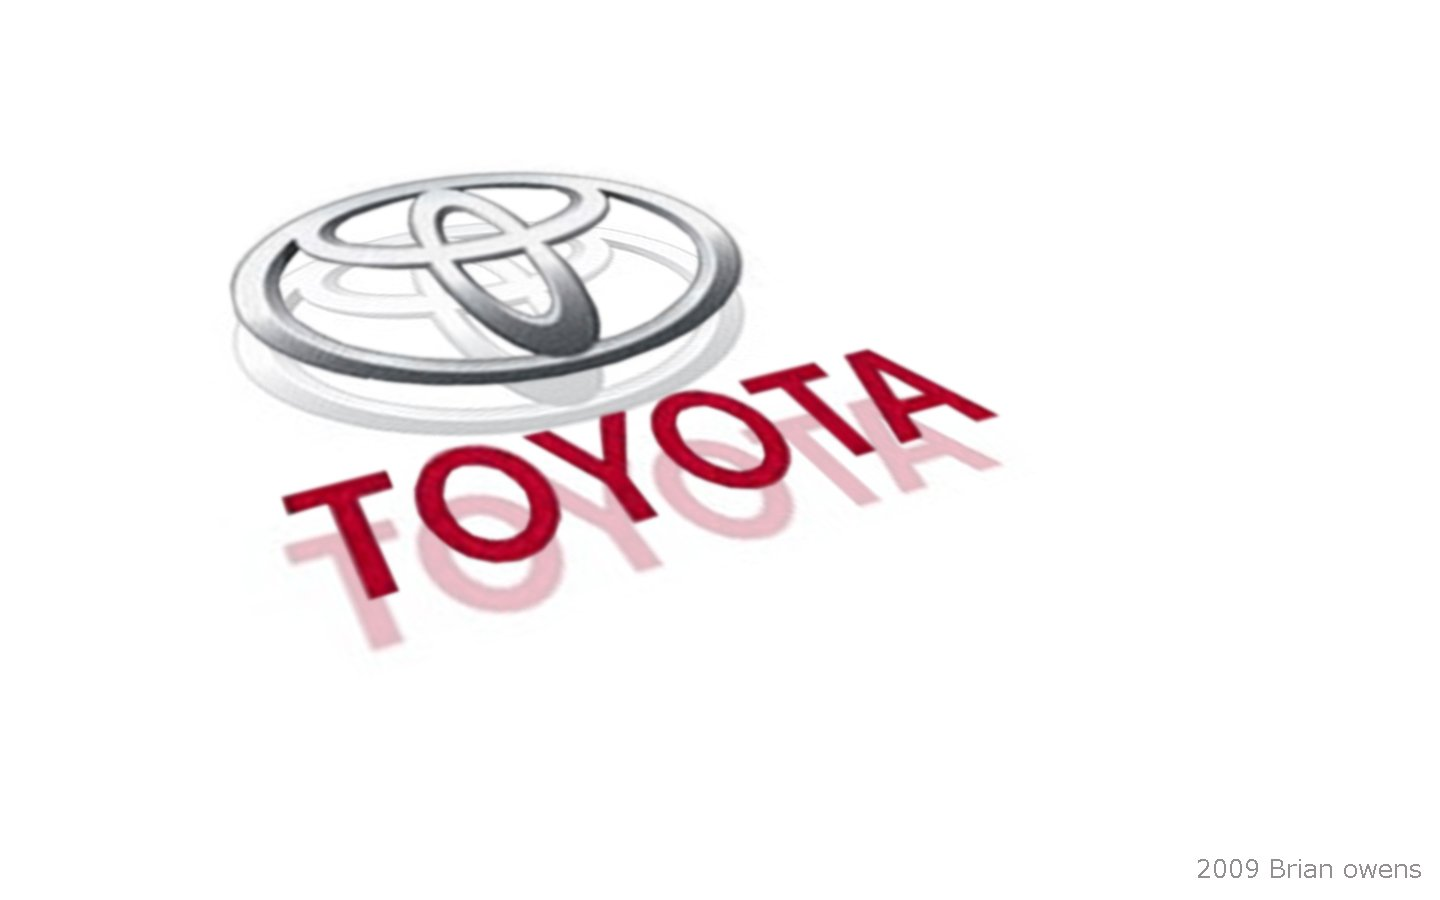 Toyota Logo Wallpapers 4708 Hd Wallpapers in Logos   Imagescicom 1440x900